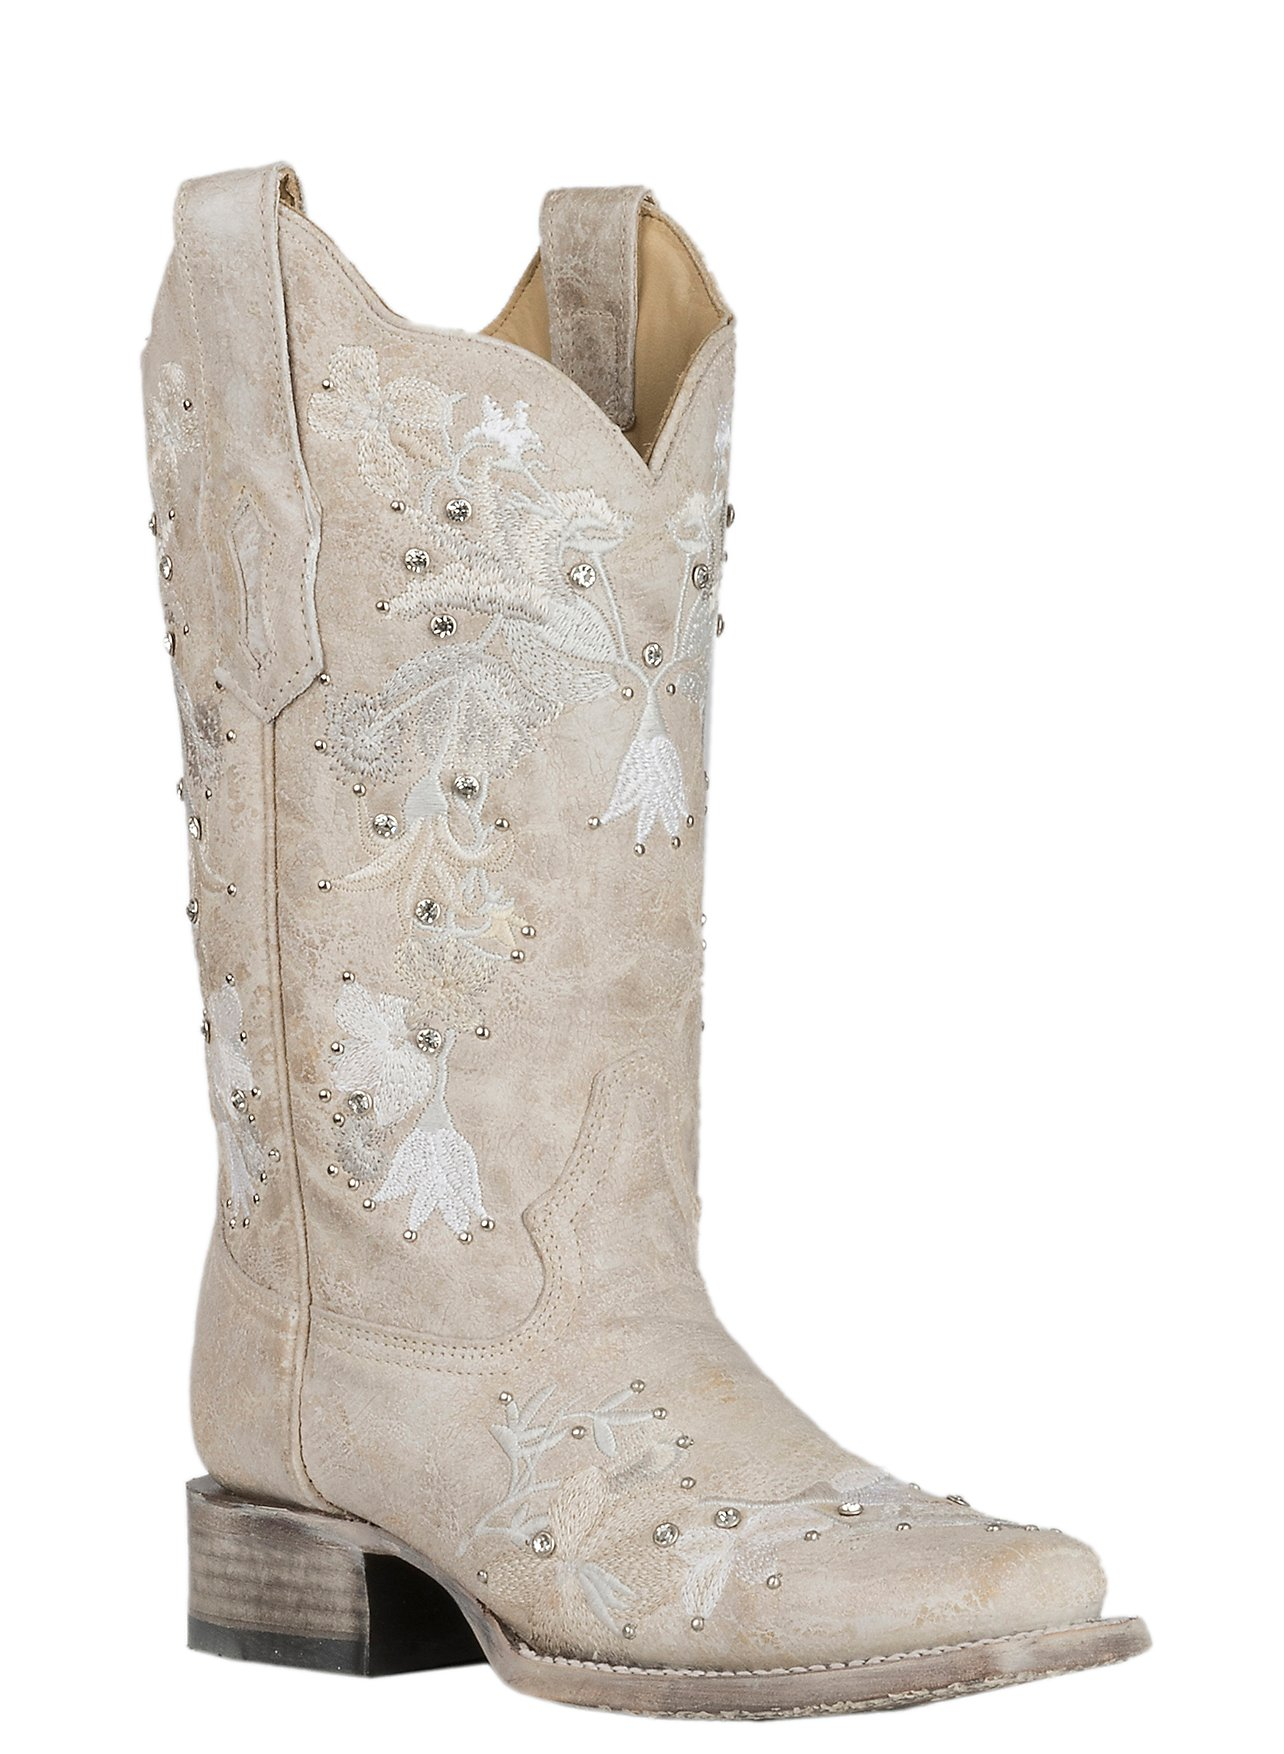 Corral Boot Company Womens White W Floral Embroidery And Crystals Wedding Western Square Toe Boots